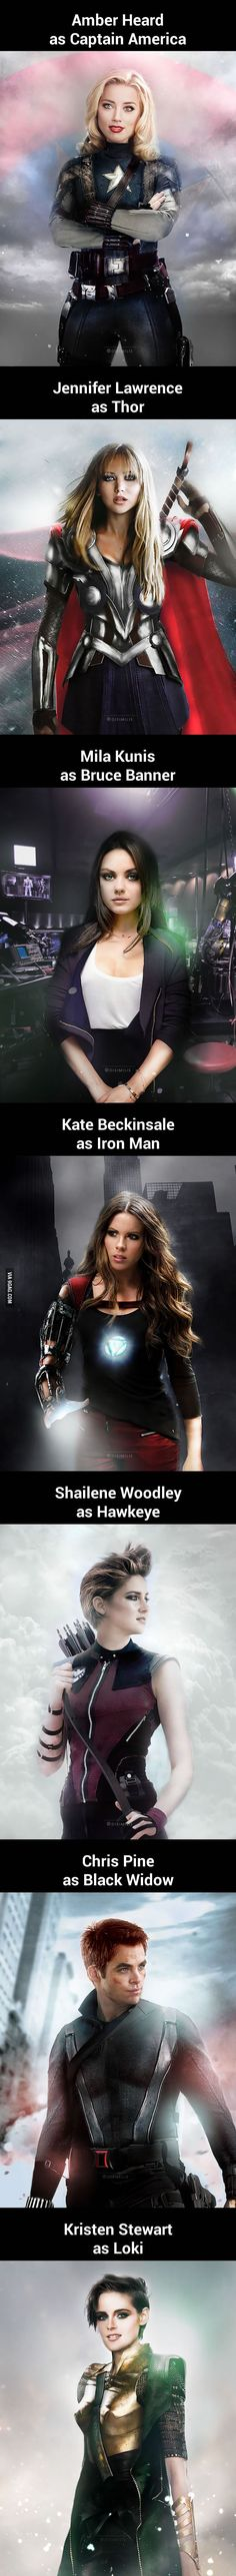 Genderbend Marvel and actors--- I agree with about half of these